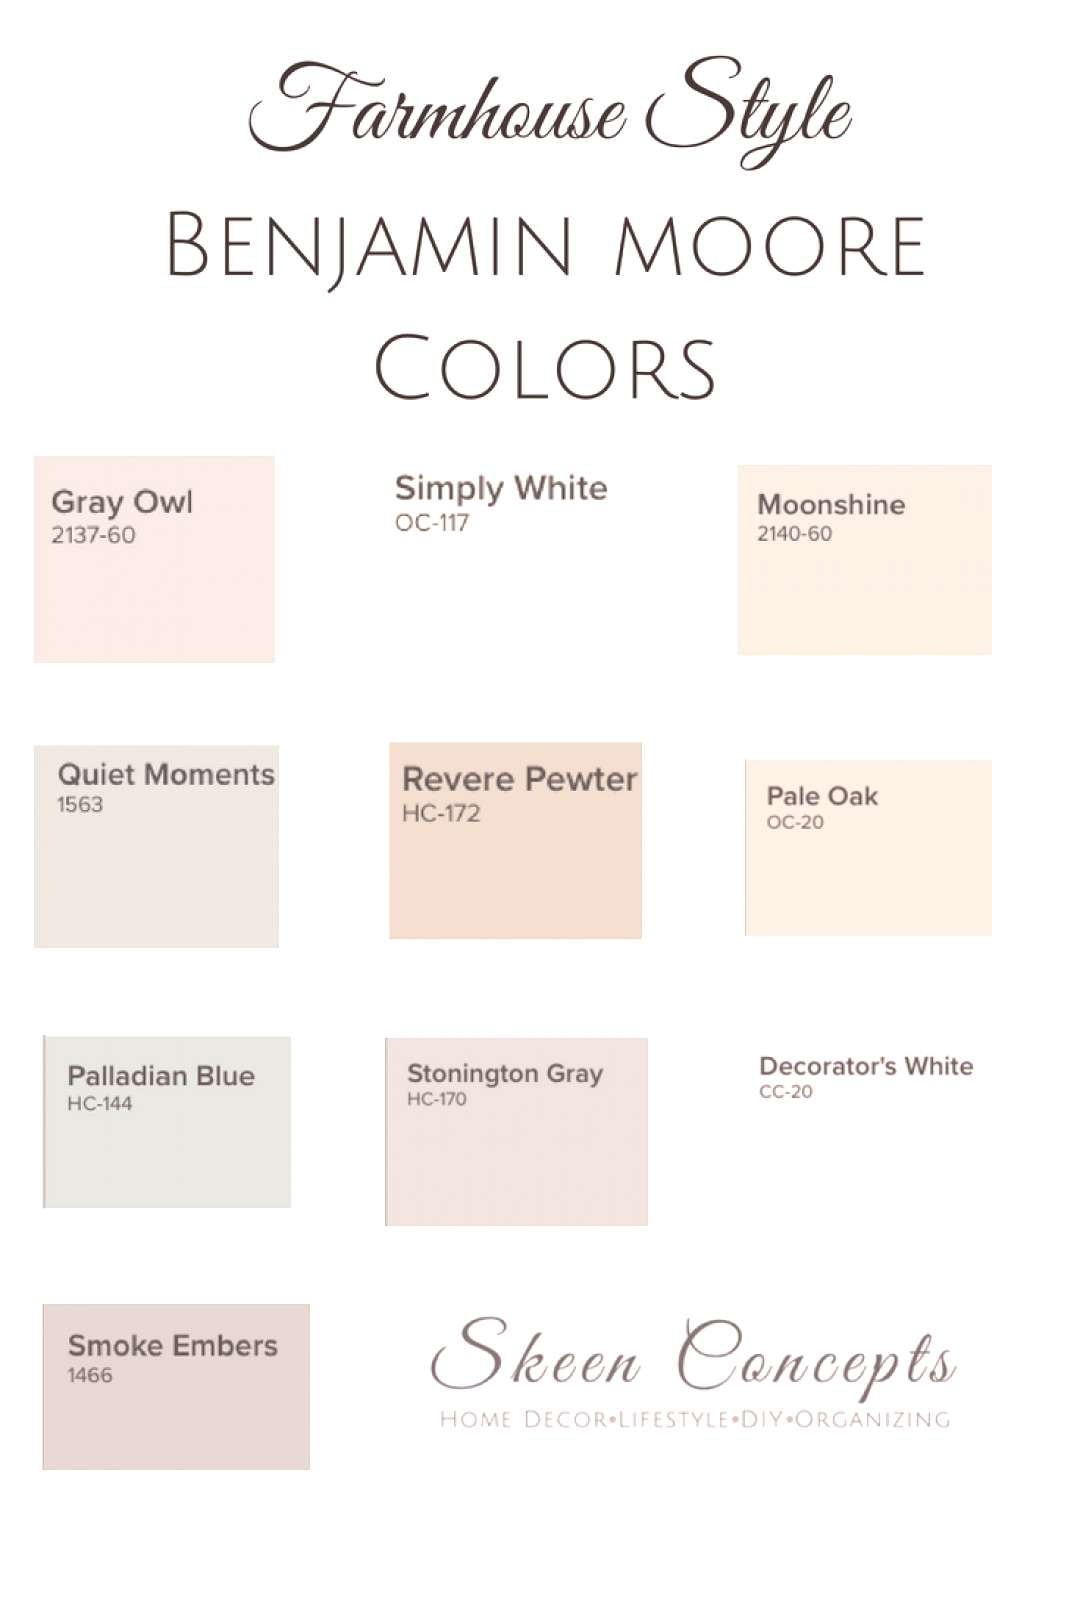 Farmhouse Style inspired paint colors from Benjamin Moore. How to add Farmhouse Style to your home.